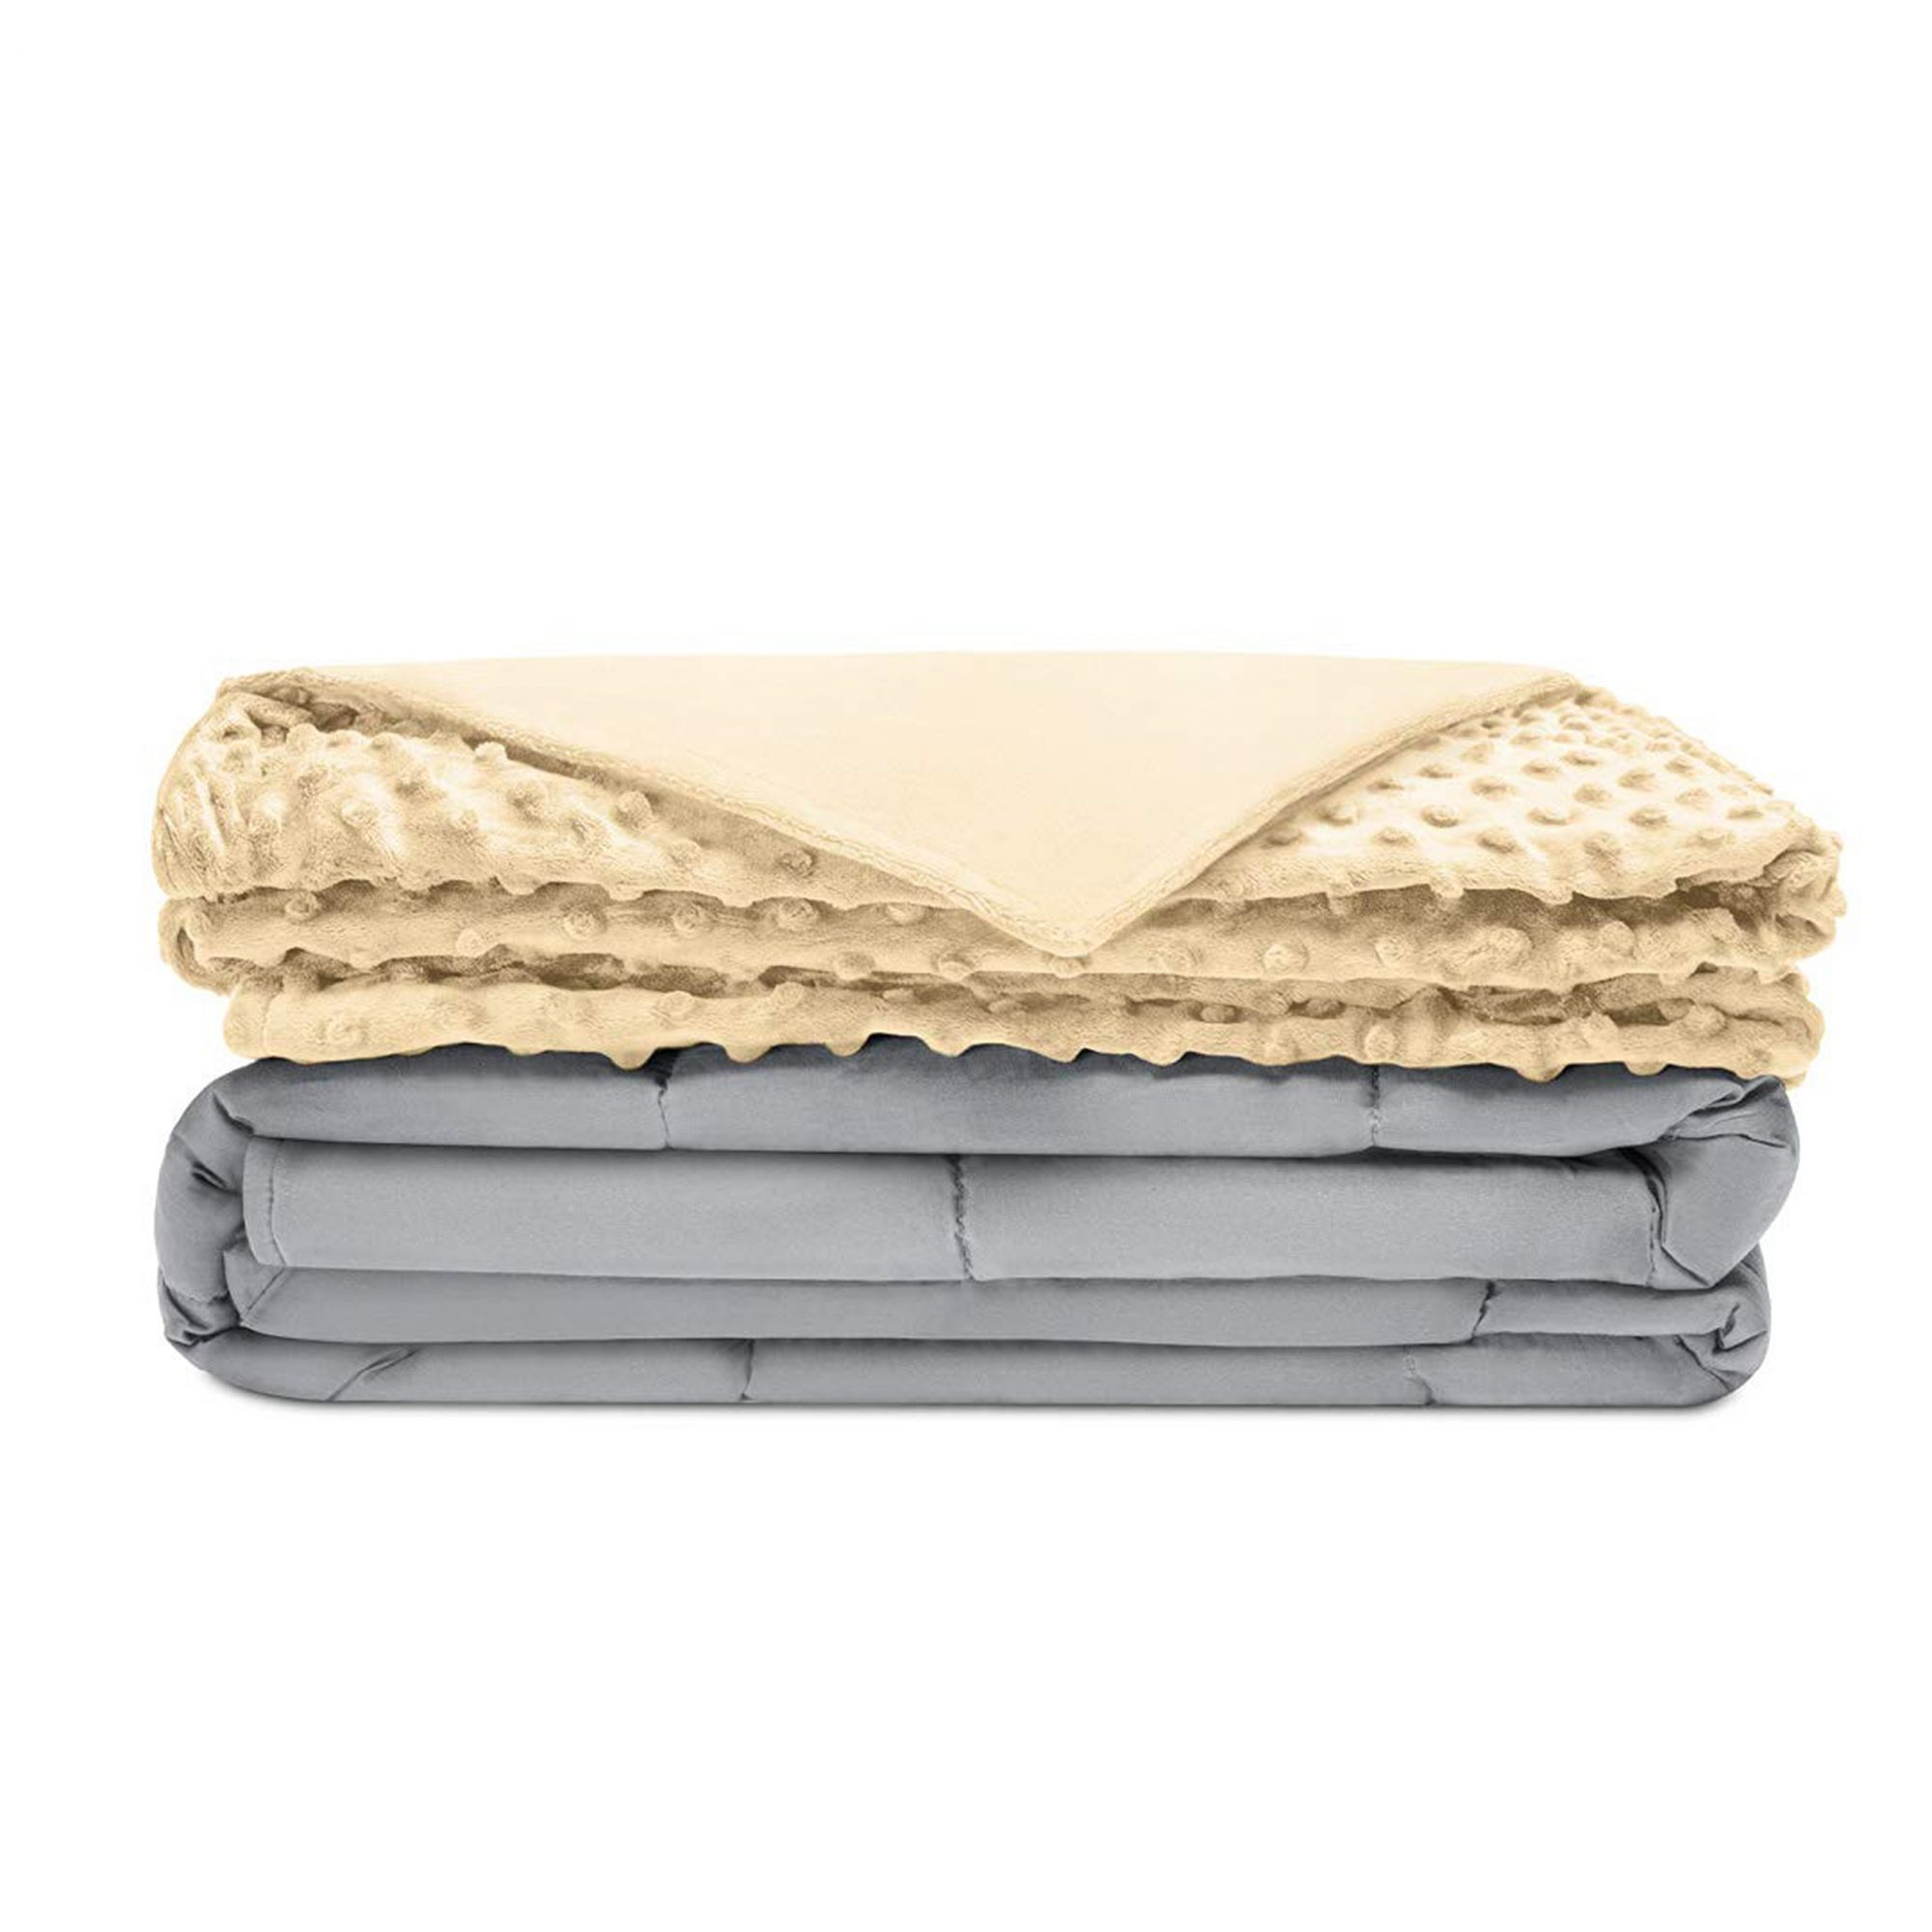 Quilty Weighted Blanket for Sleep